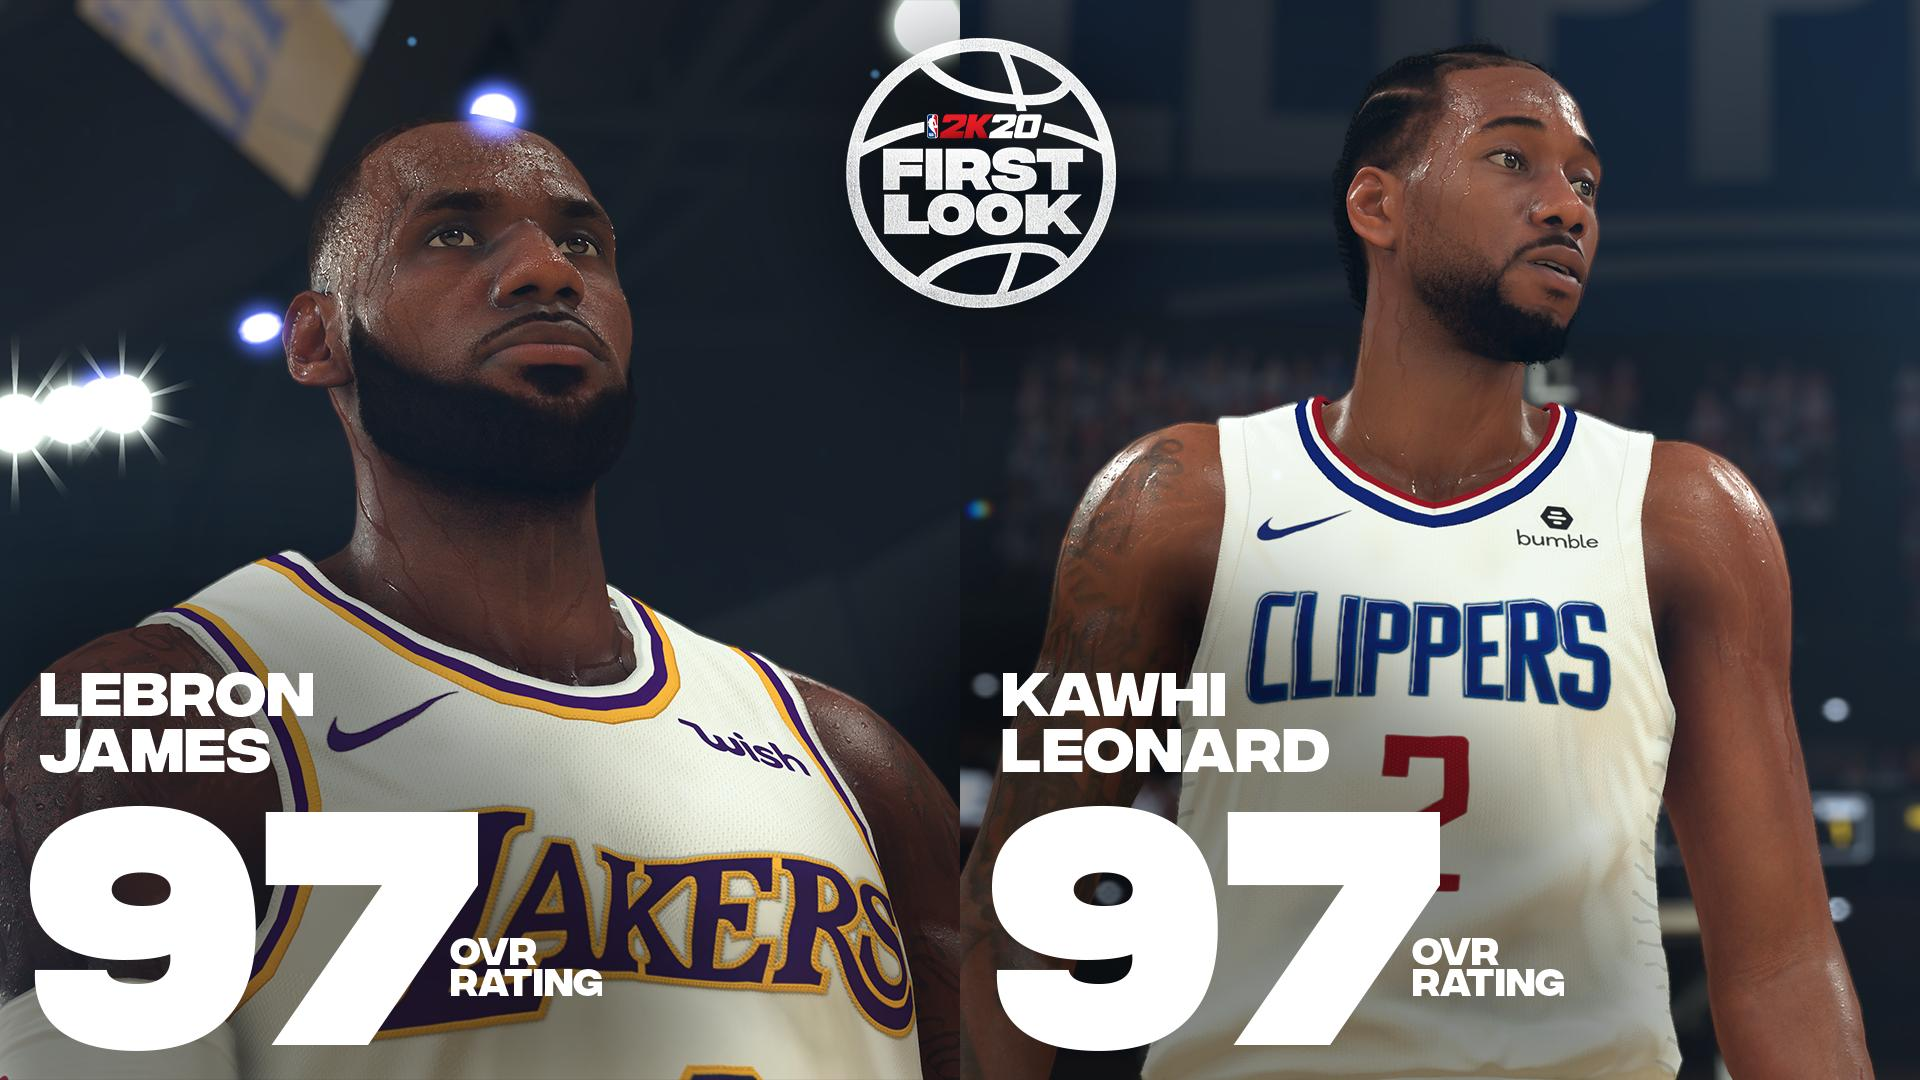 NBA 2K20: Examining the First Look Player Ratings